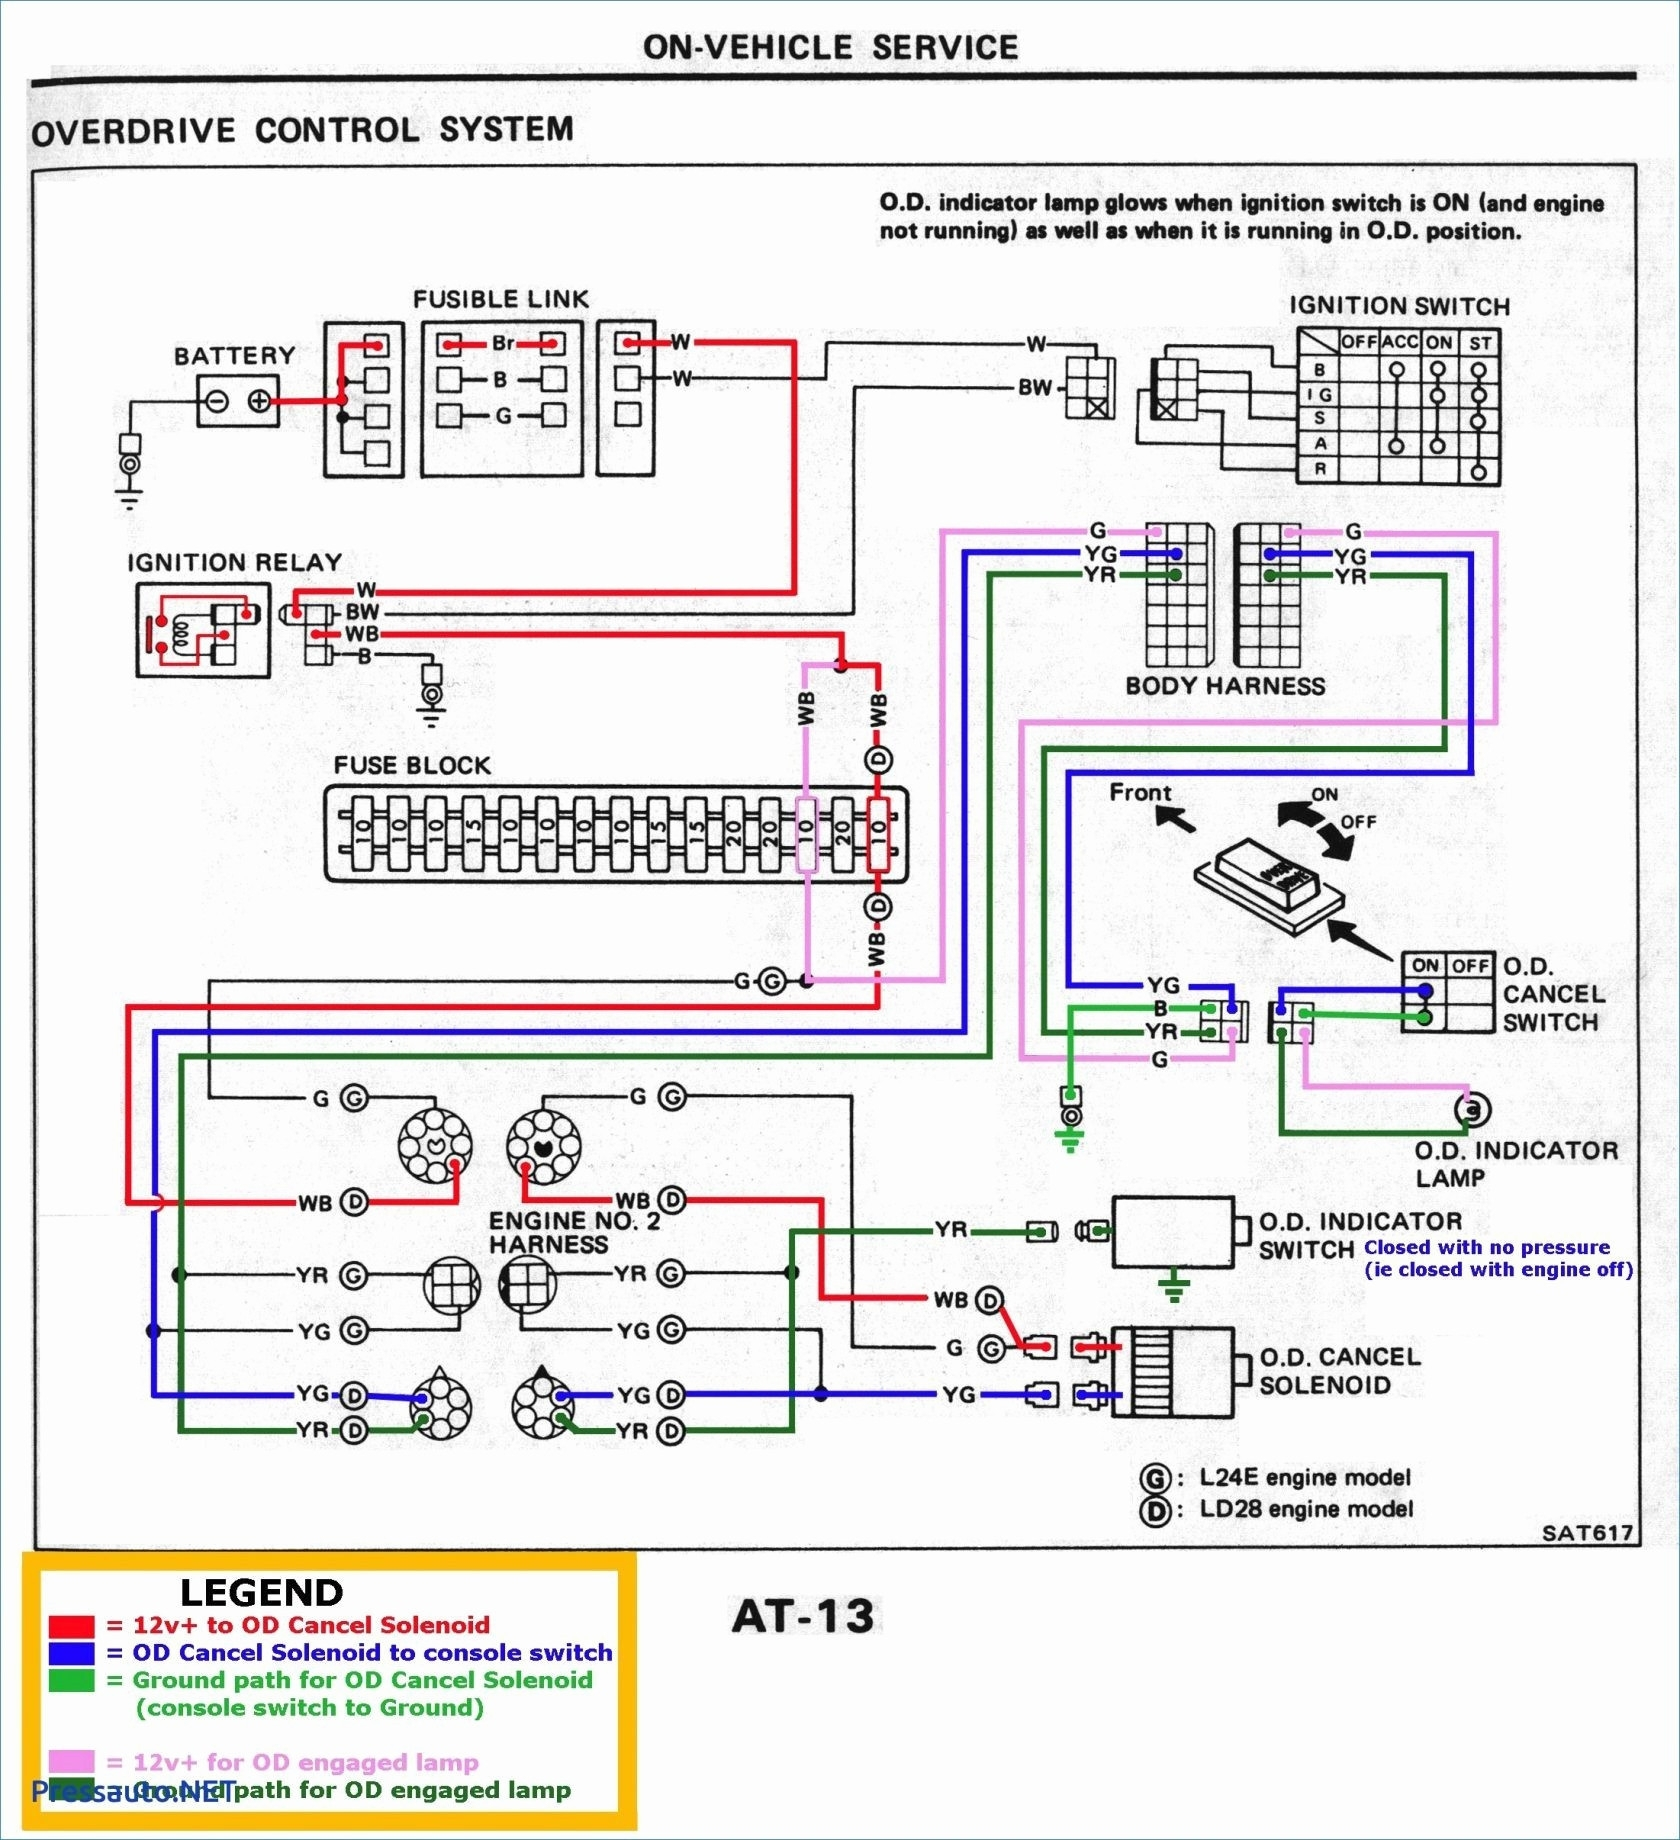 windlass wiring diagram Collection-Windlass Wiring Diagram Wiring Diagram Winch solenoid Refrence Wiring Diagram for Warn Winch Fresh Wiring 18-t